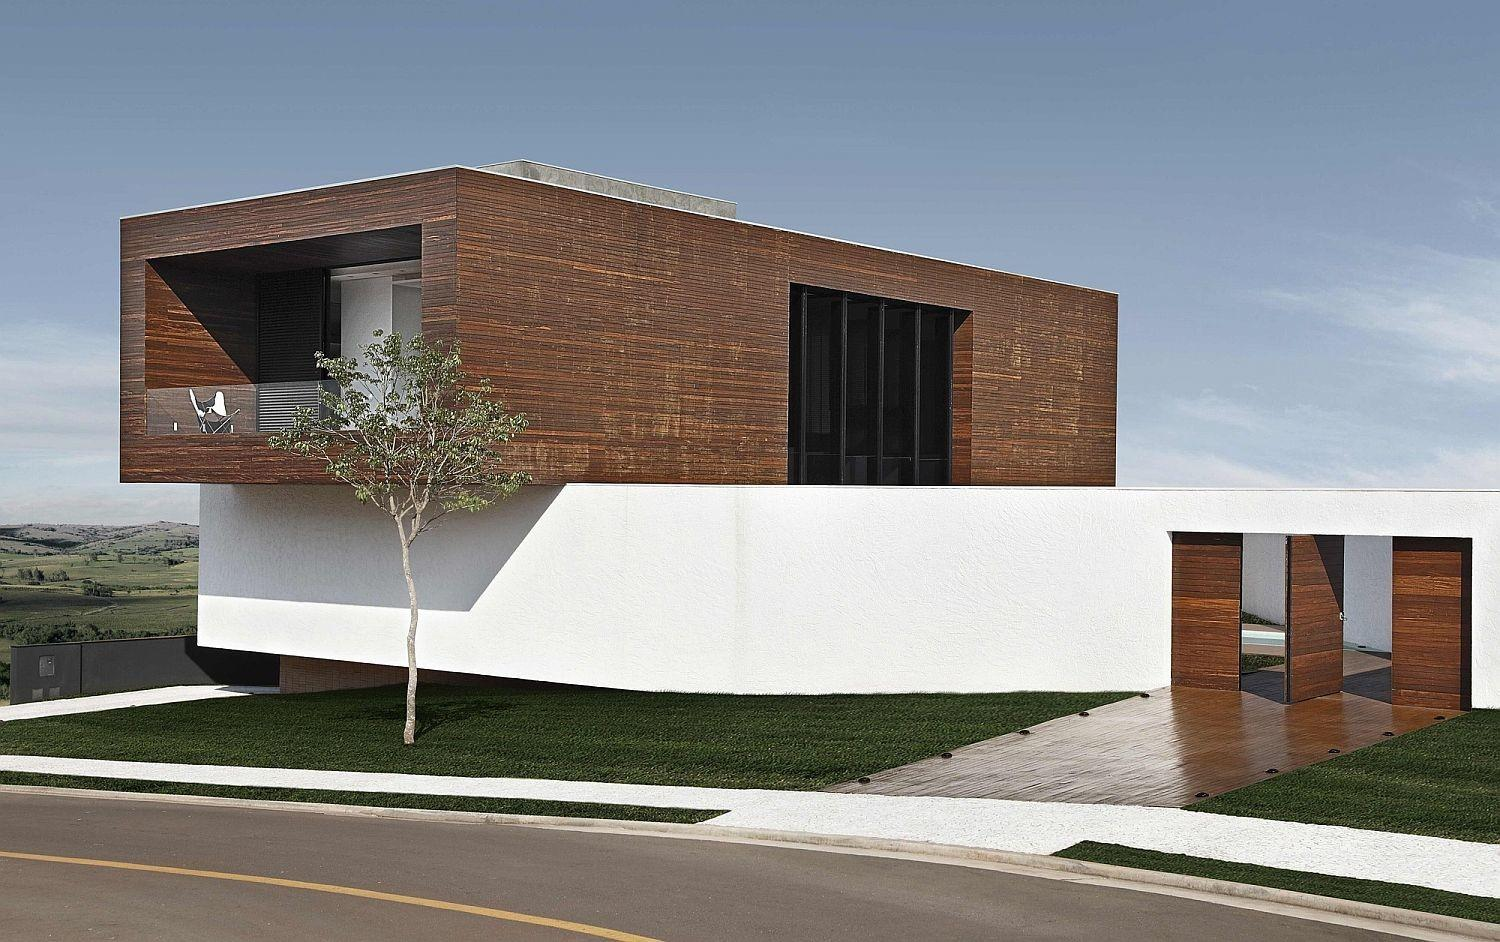 House Cantilevered Brilliance Wrapped Concrete Wood